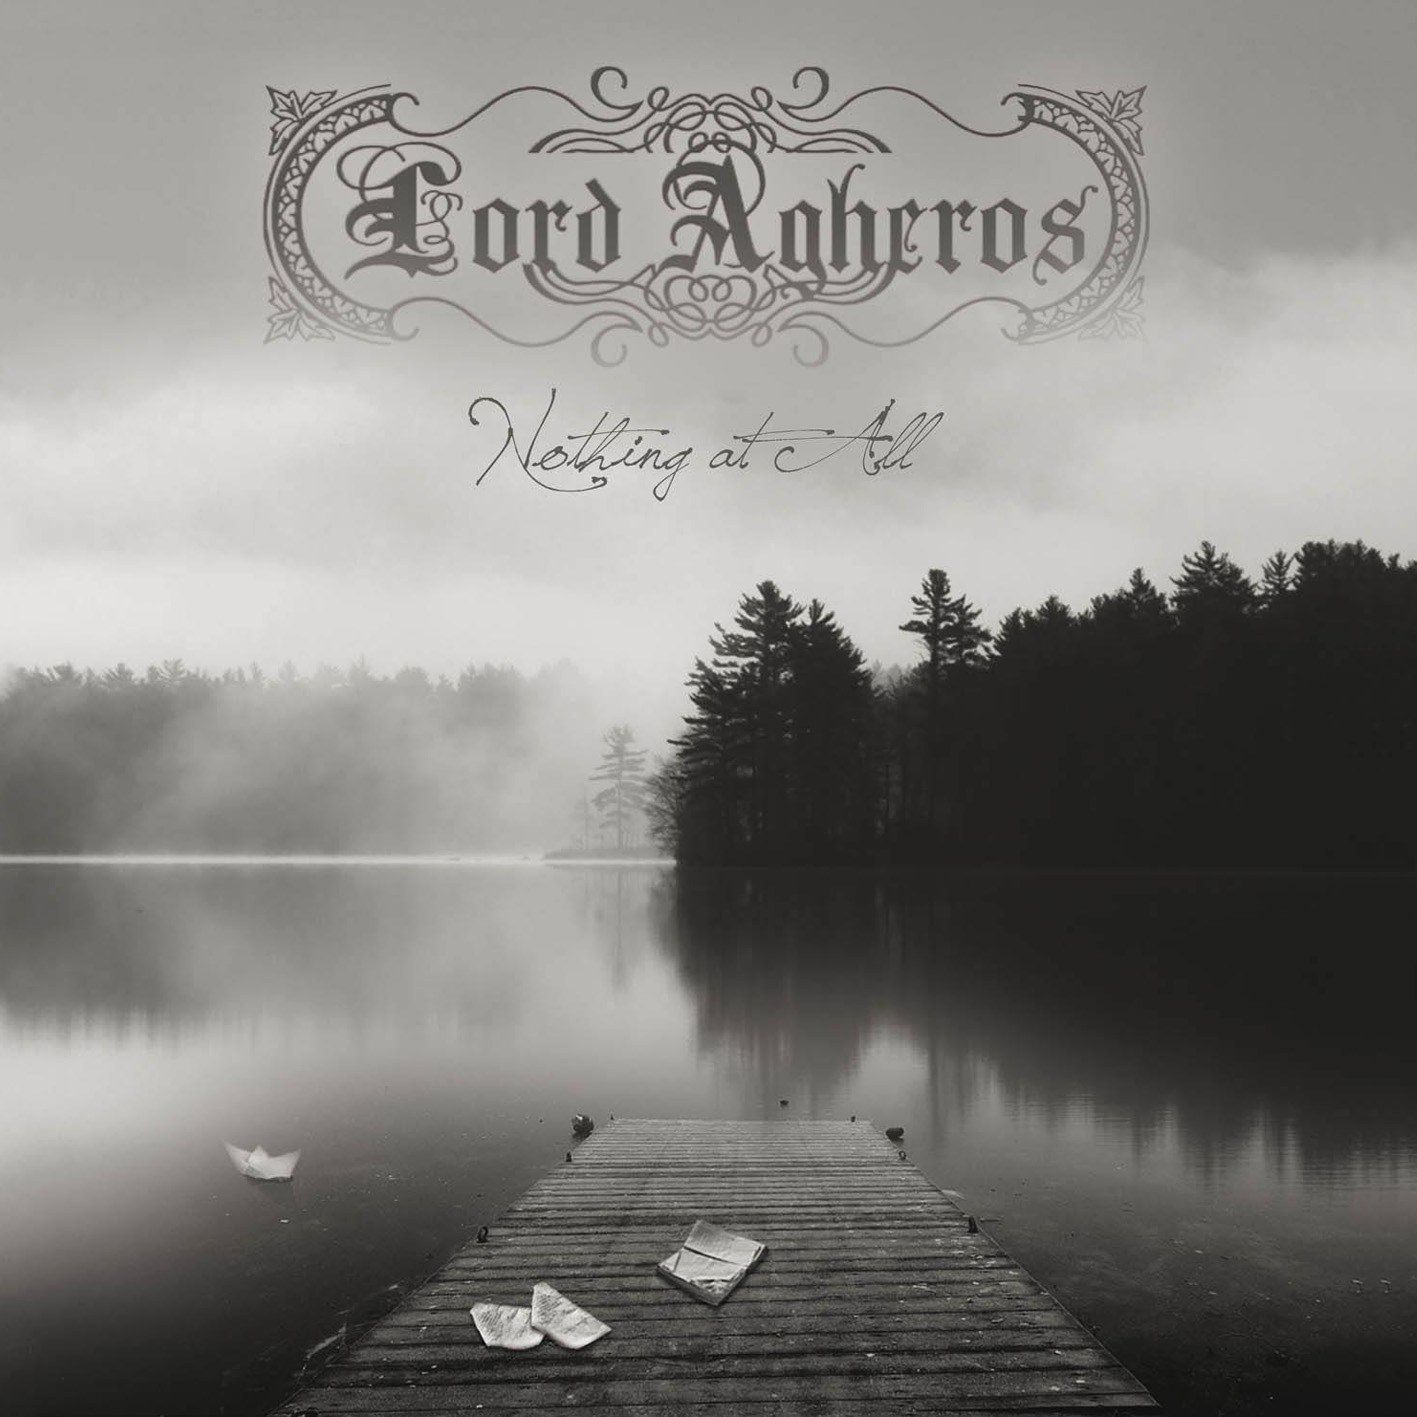 Lord Agheros - cover